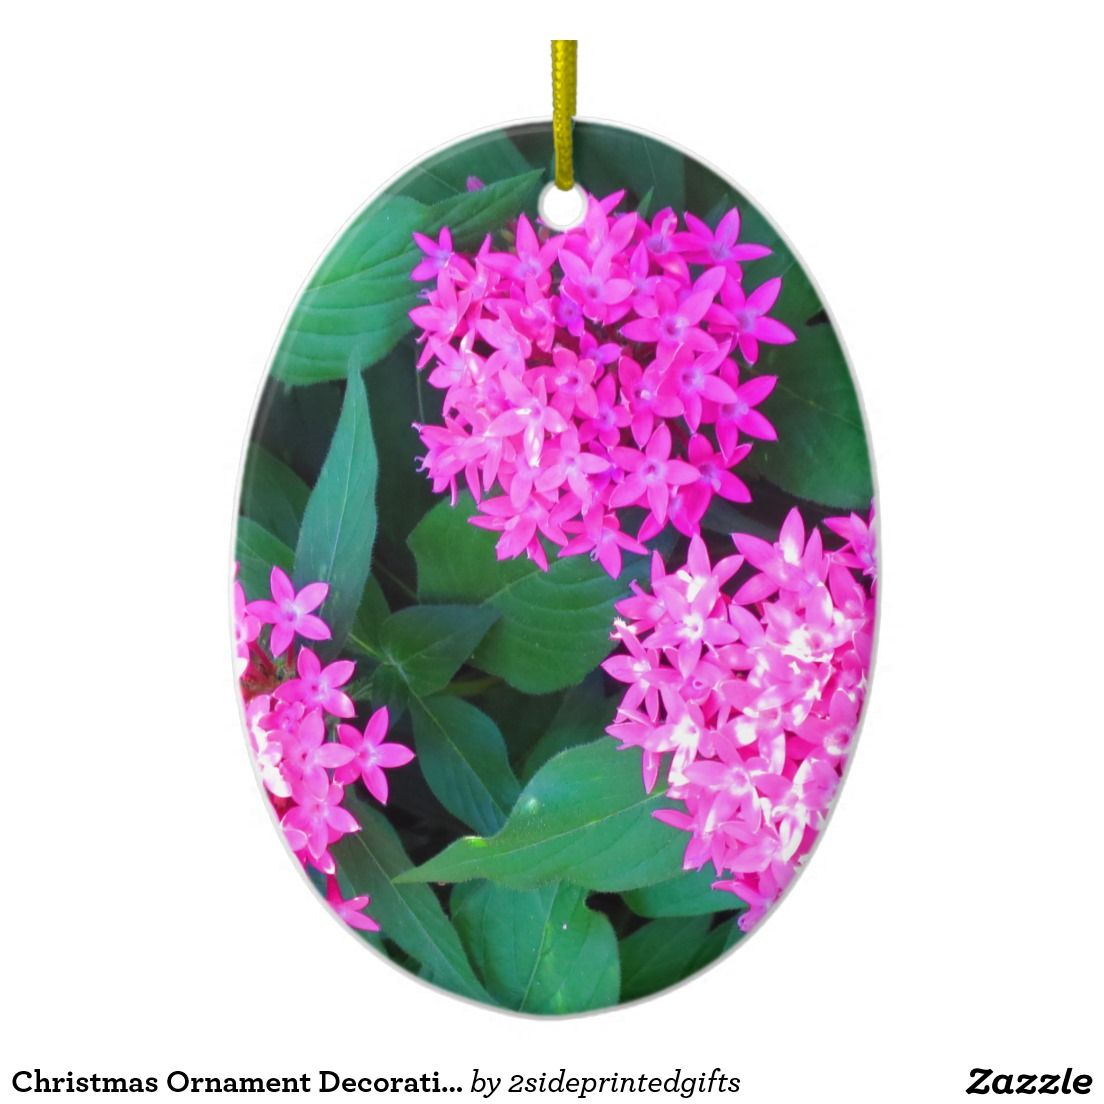 Christmas ornament decorative flower floral diy ornaments all over